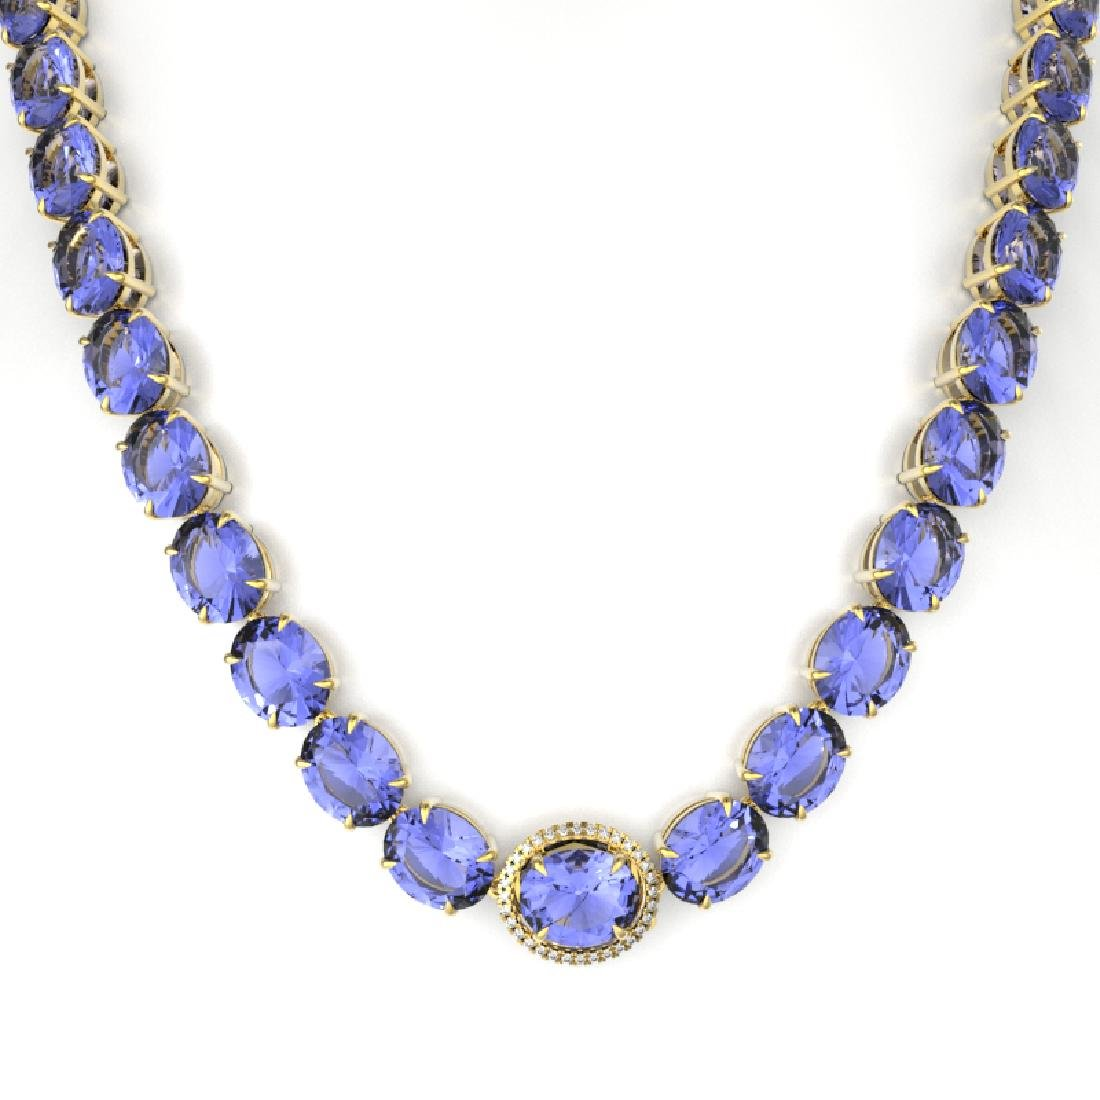 170 CTW Tanzanite & VS/SI Diamond Necklace 14K Yellow - 2